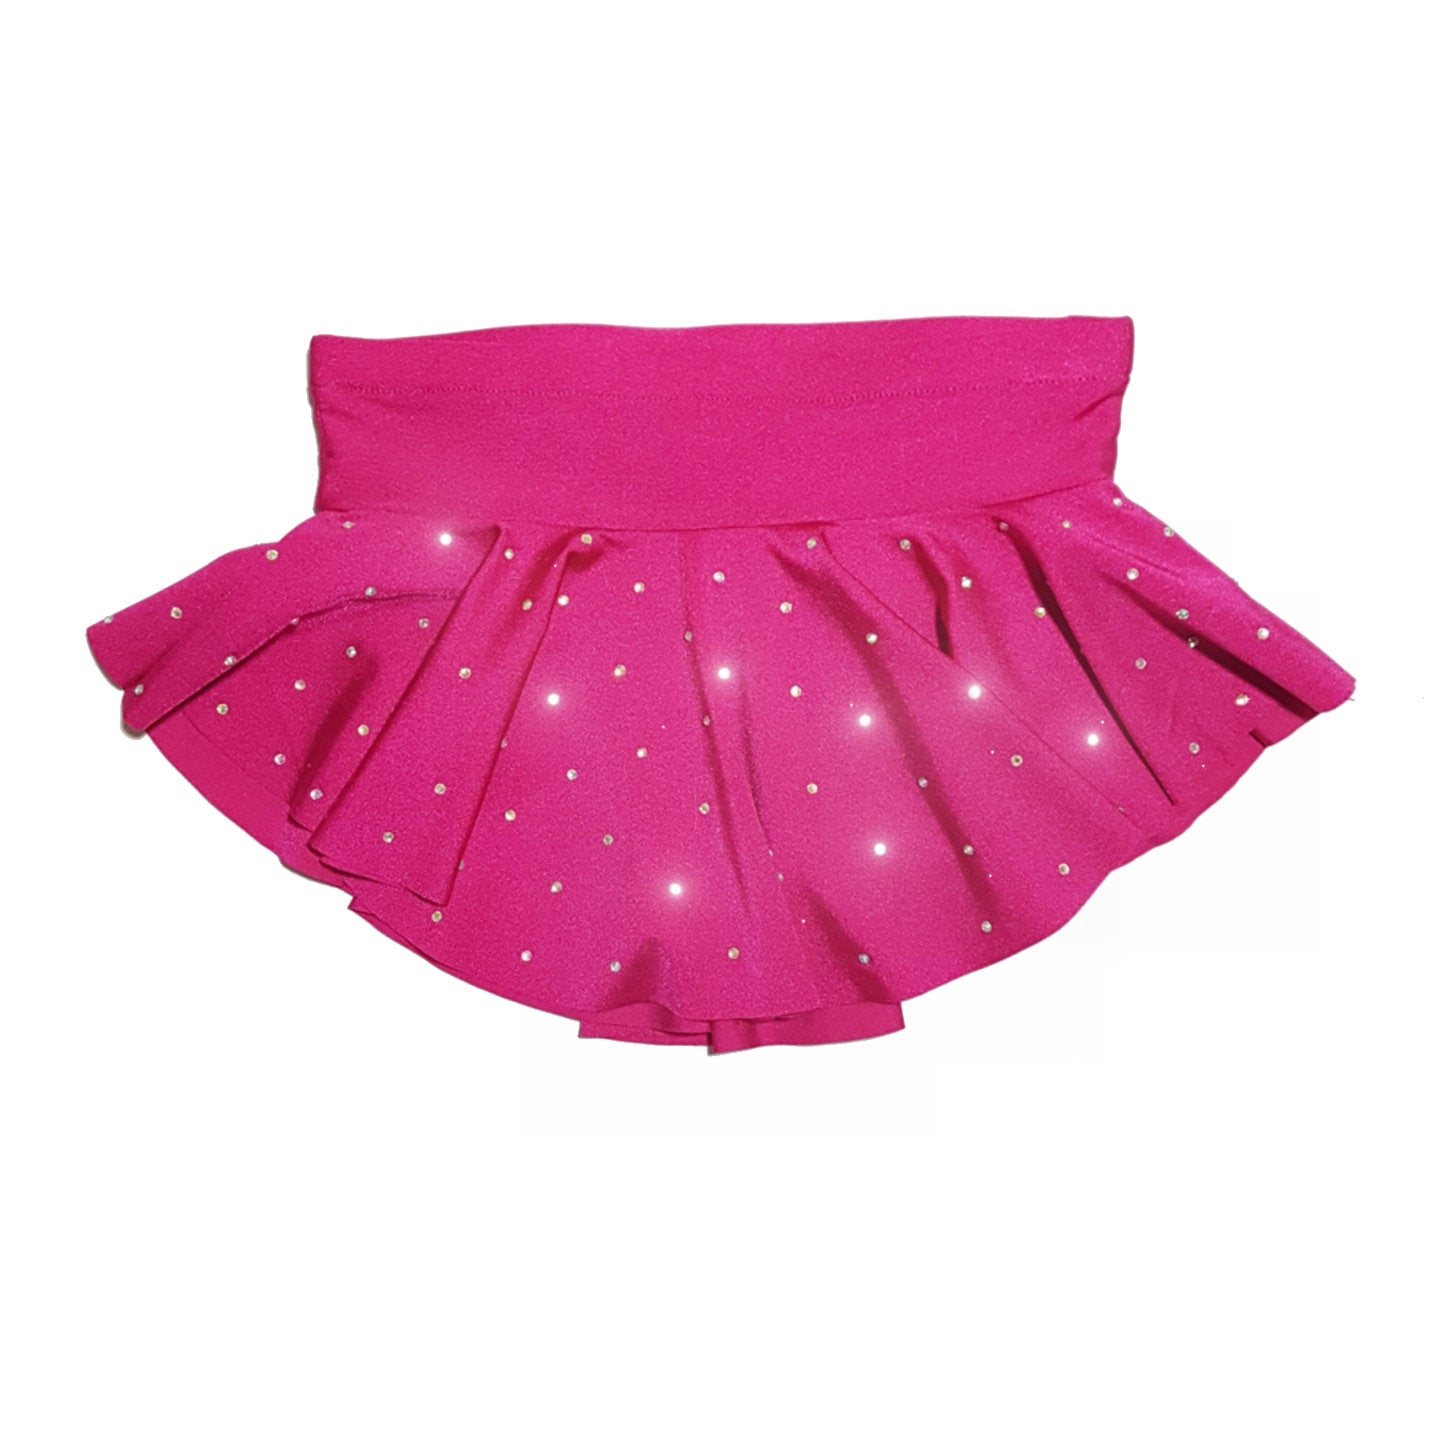 3fe3a40d870c28 Bright pink childs figure skating skirt with AB crystals - age 10-12 ice/  ...